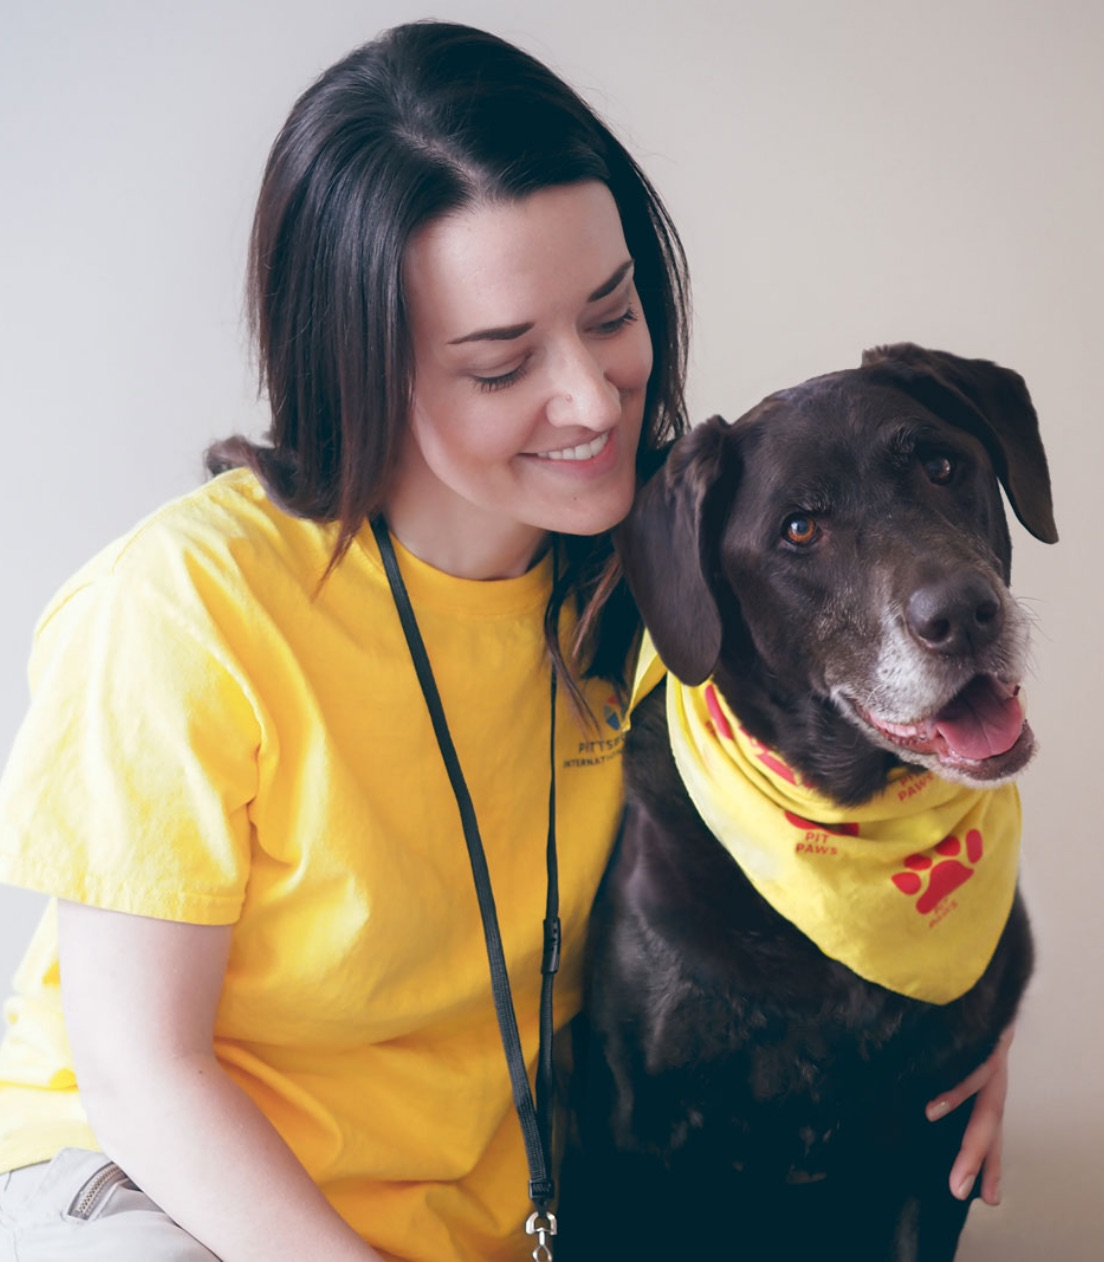 Tara Hoover and Juno, Therapy Dog Team